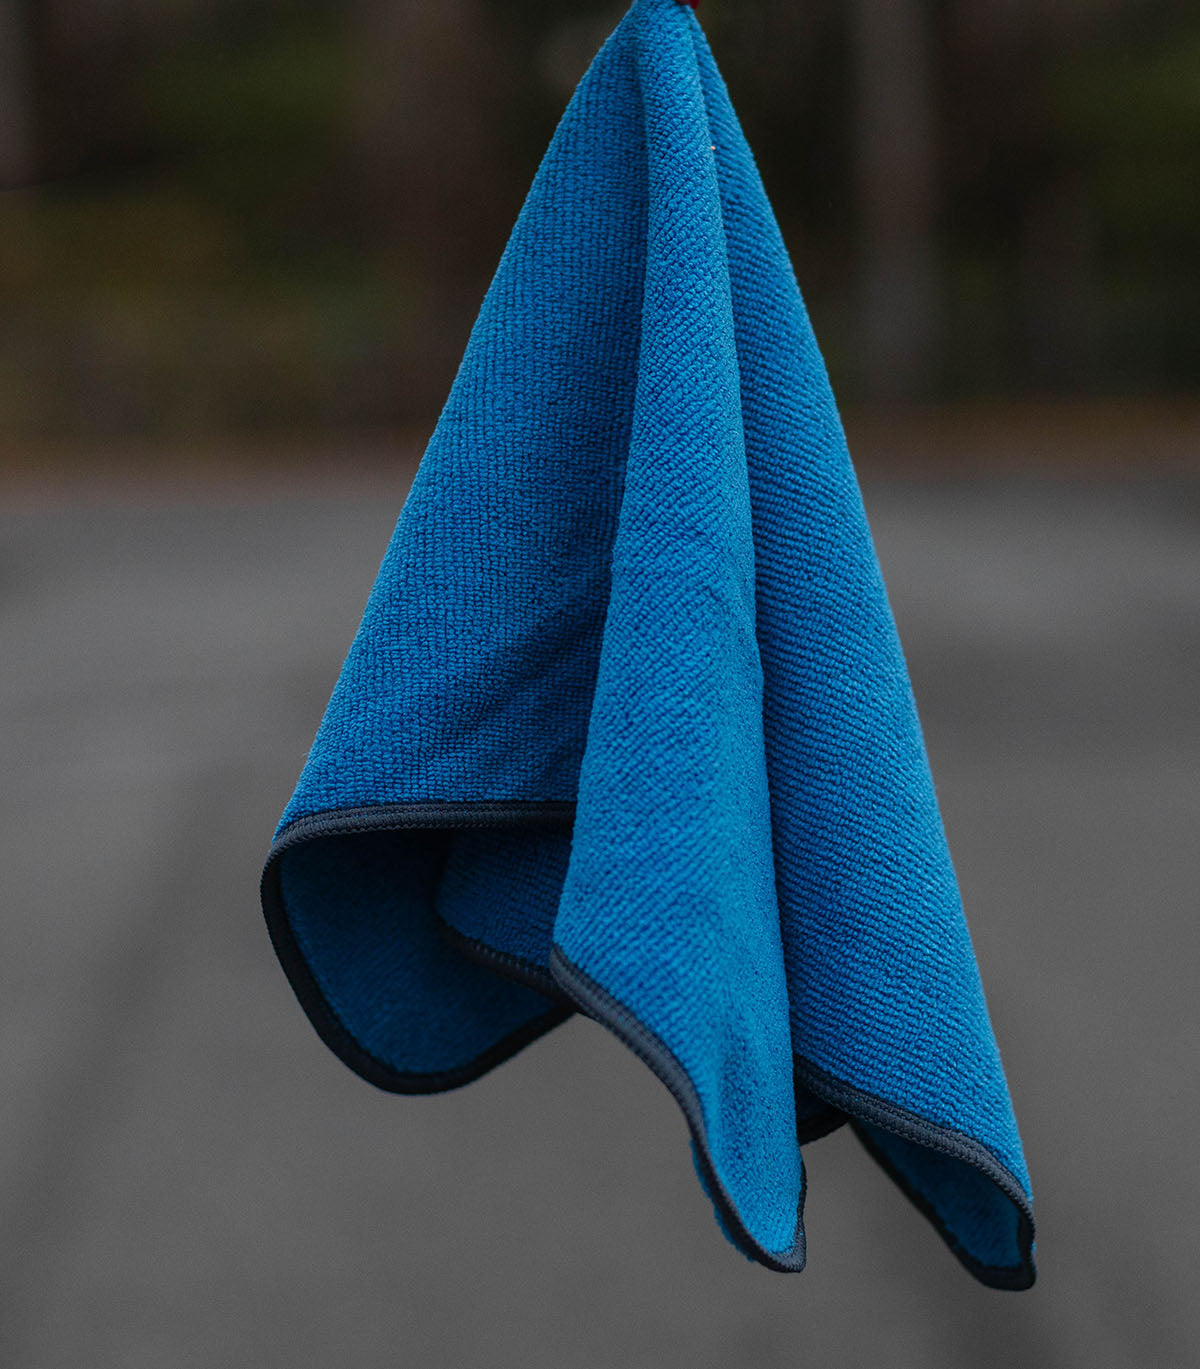 Tentacle Towel Mini (10 Pack)